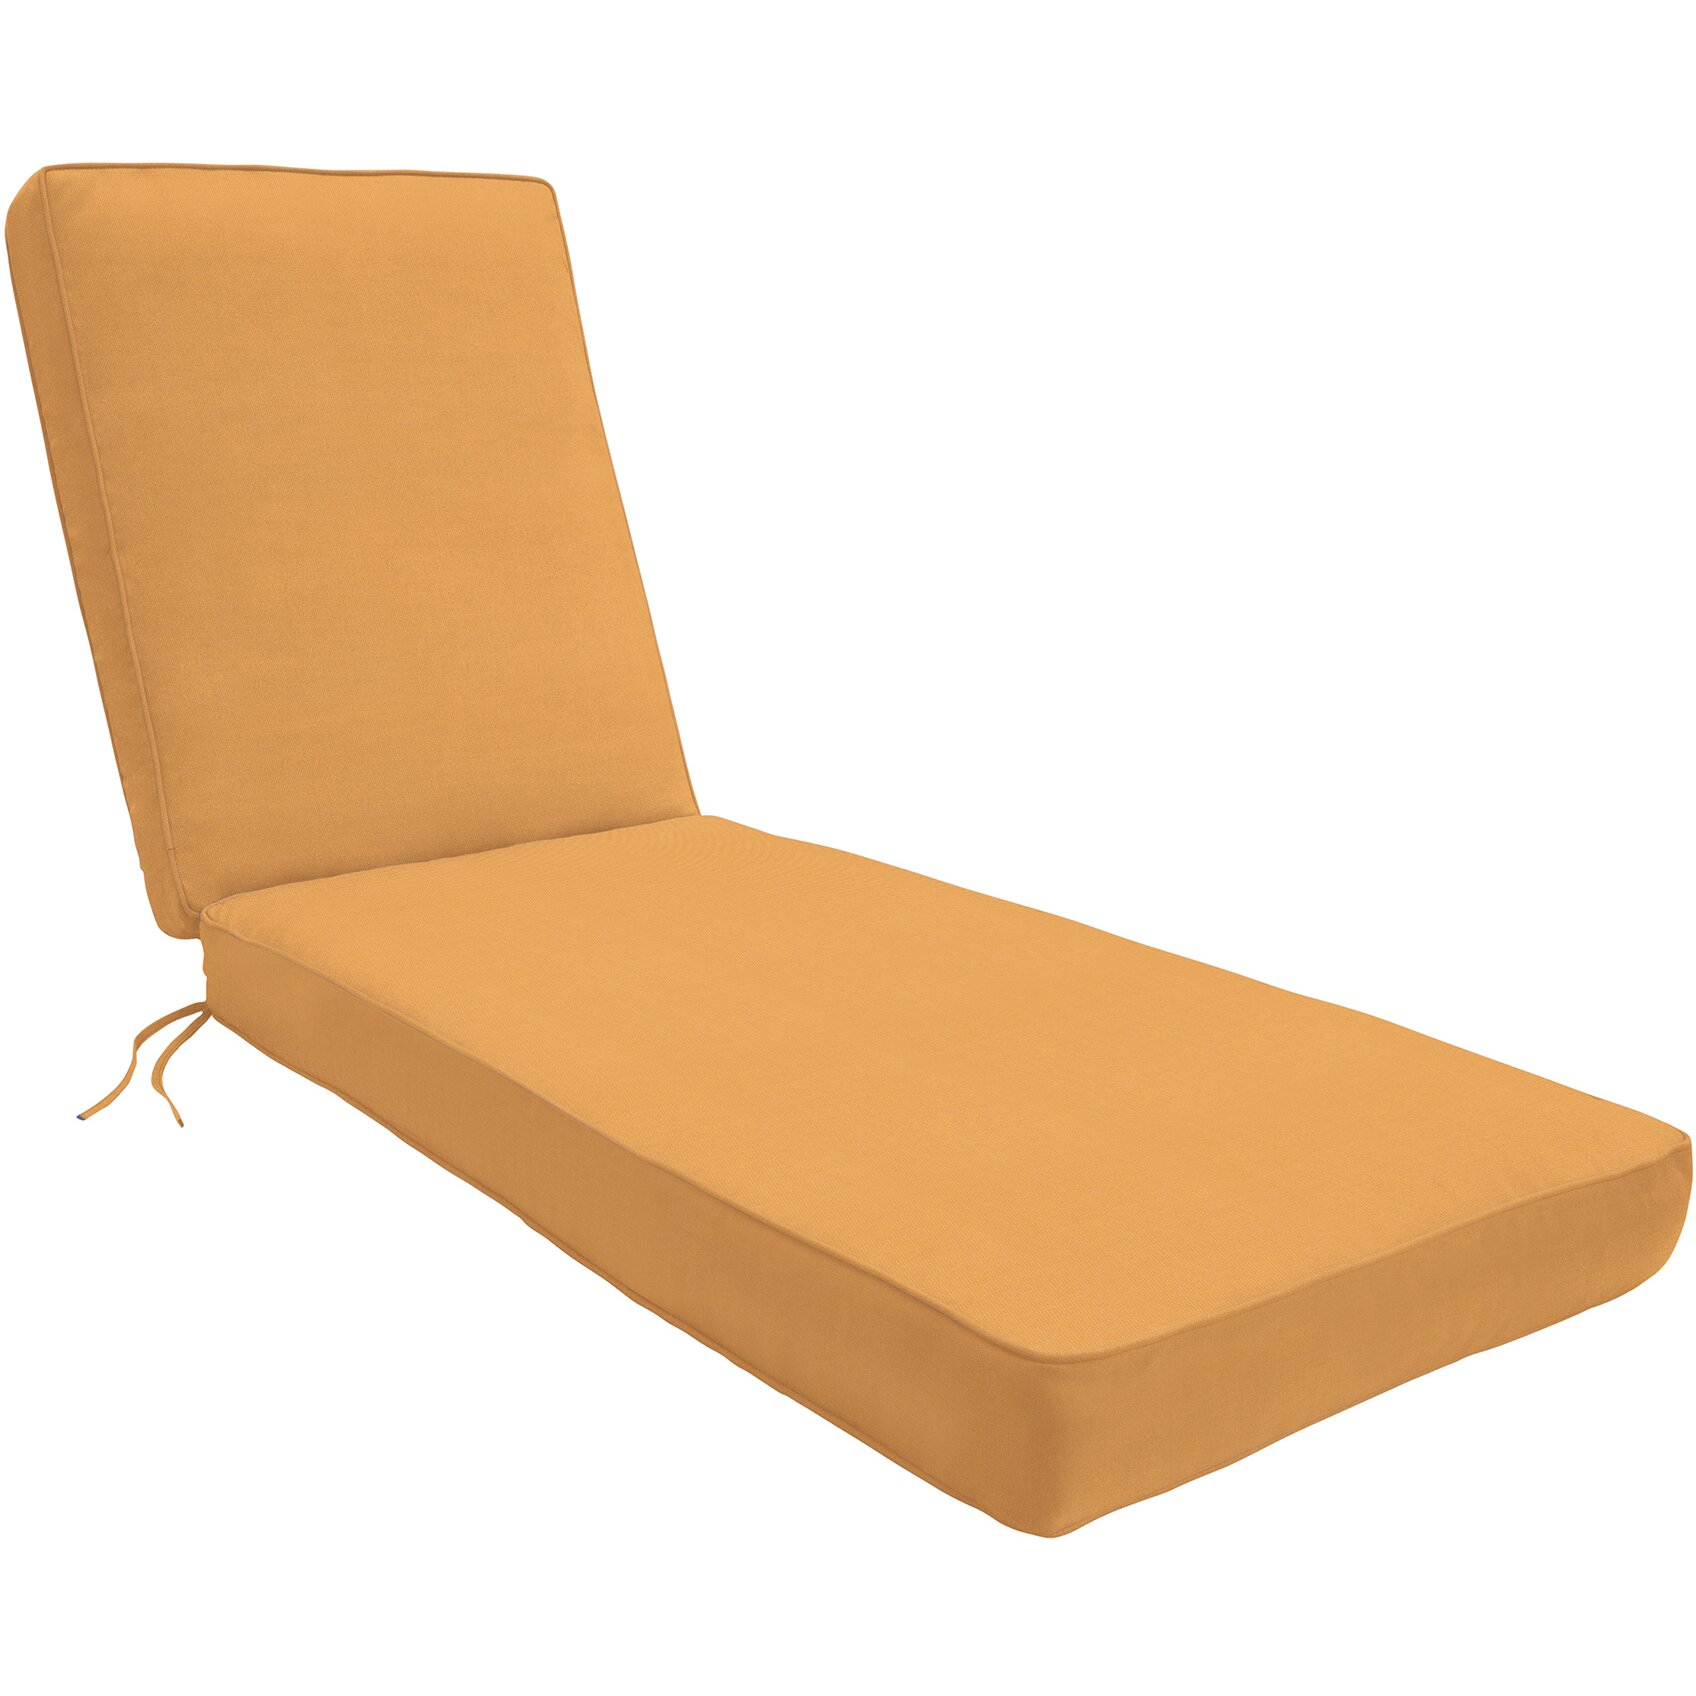 Wayfair custom outdoor cushions outdoor sunbrella chaise for Chaise cushions on sale